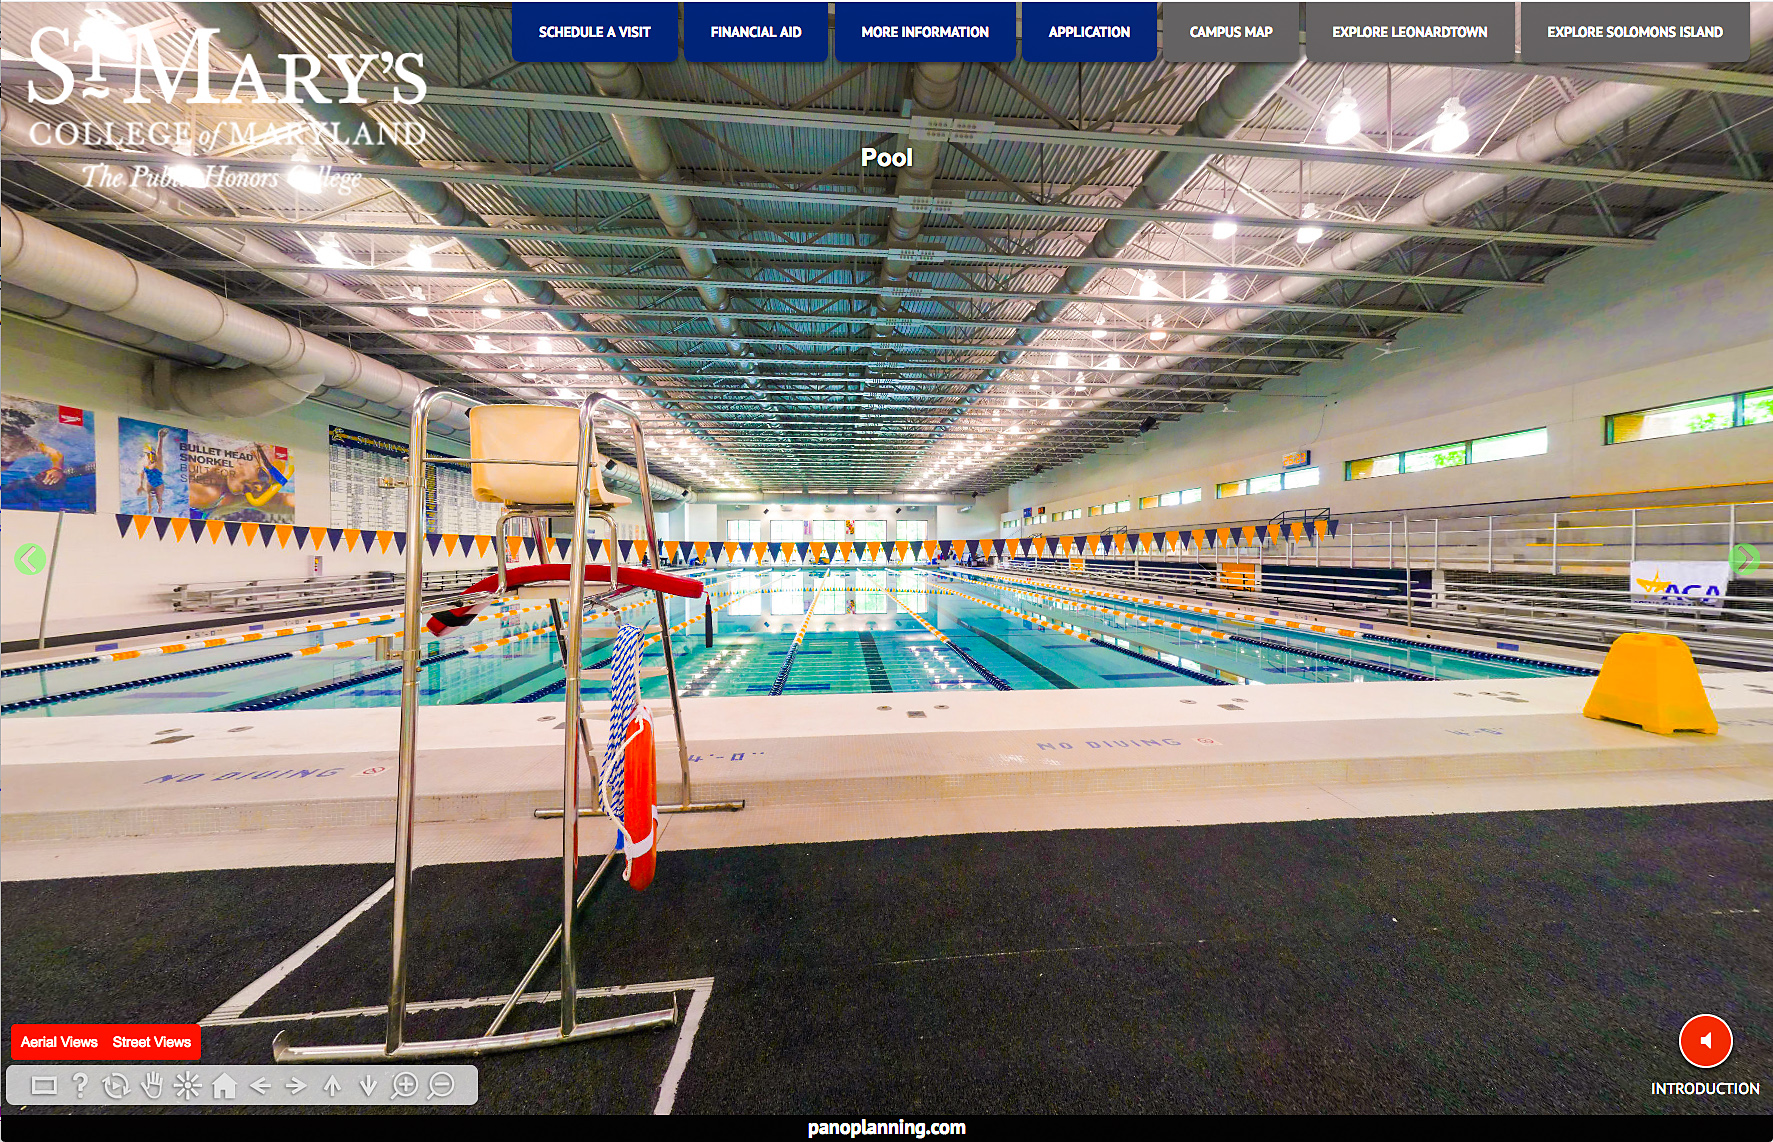 Interior panorama of olympic pool at St. Mary's College.